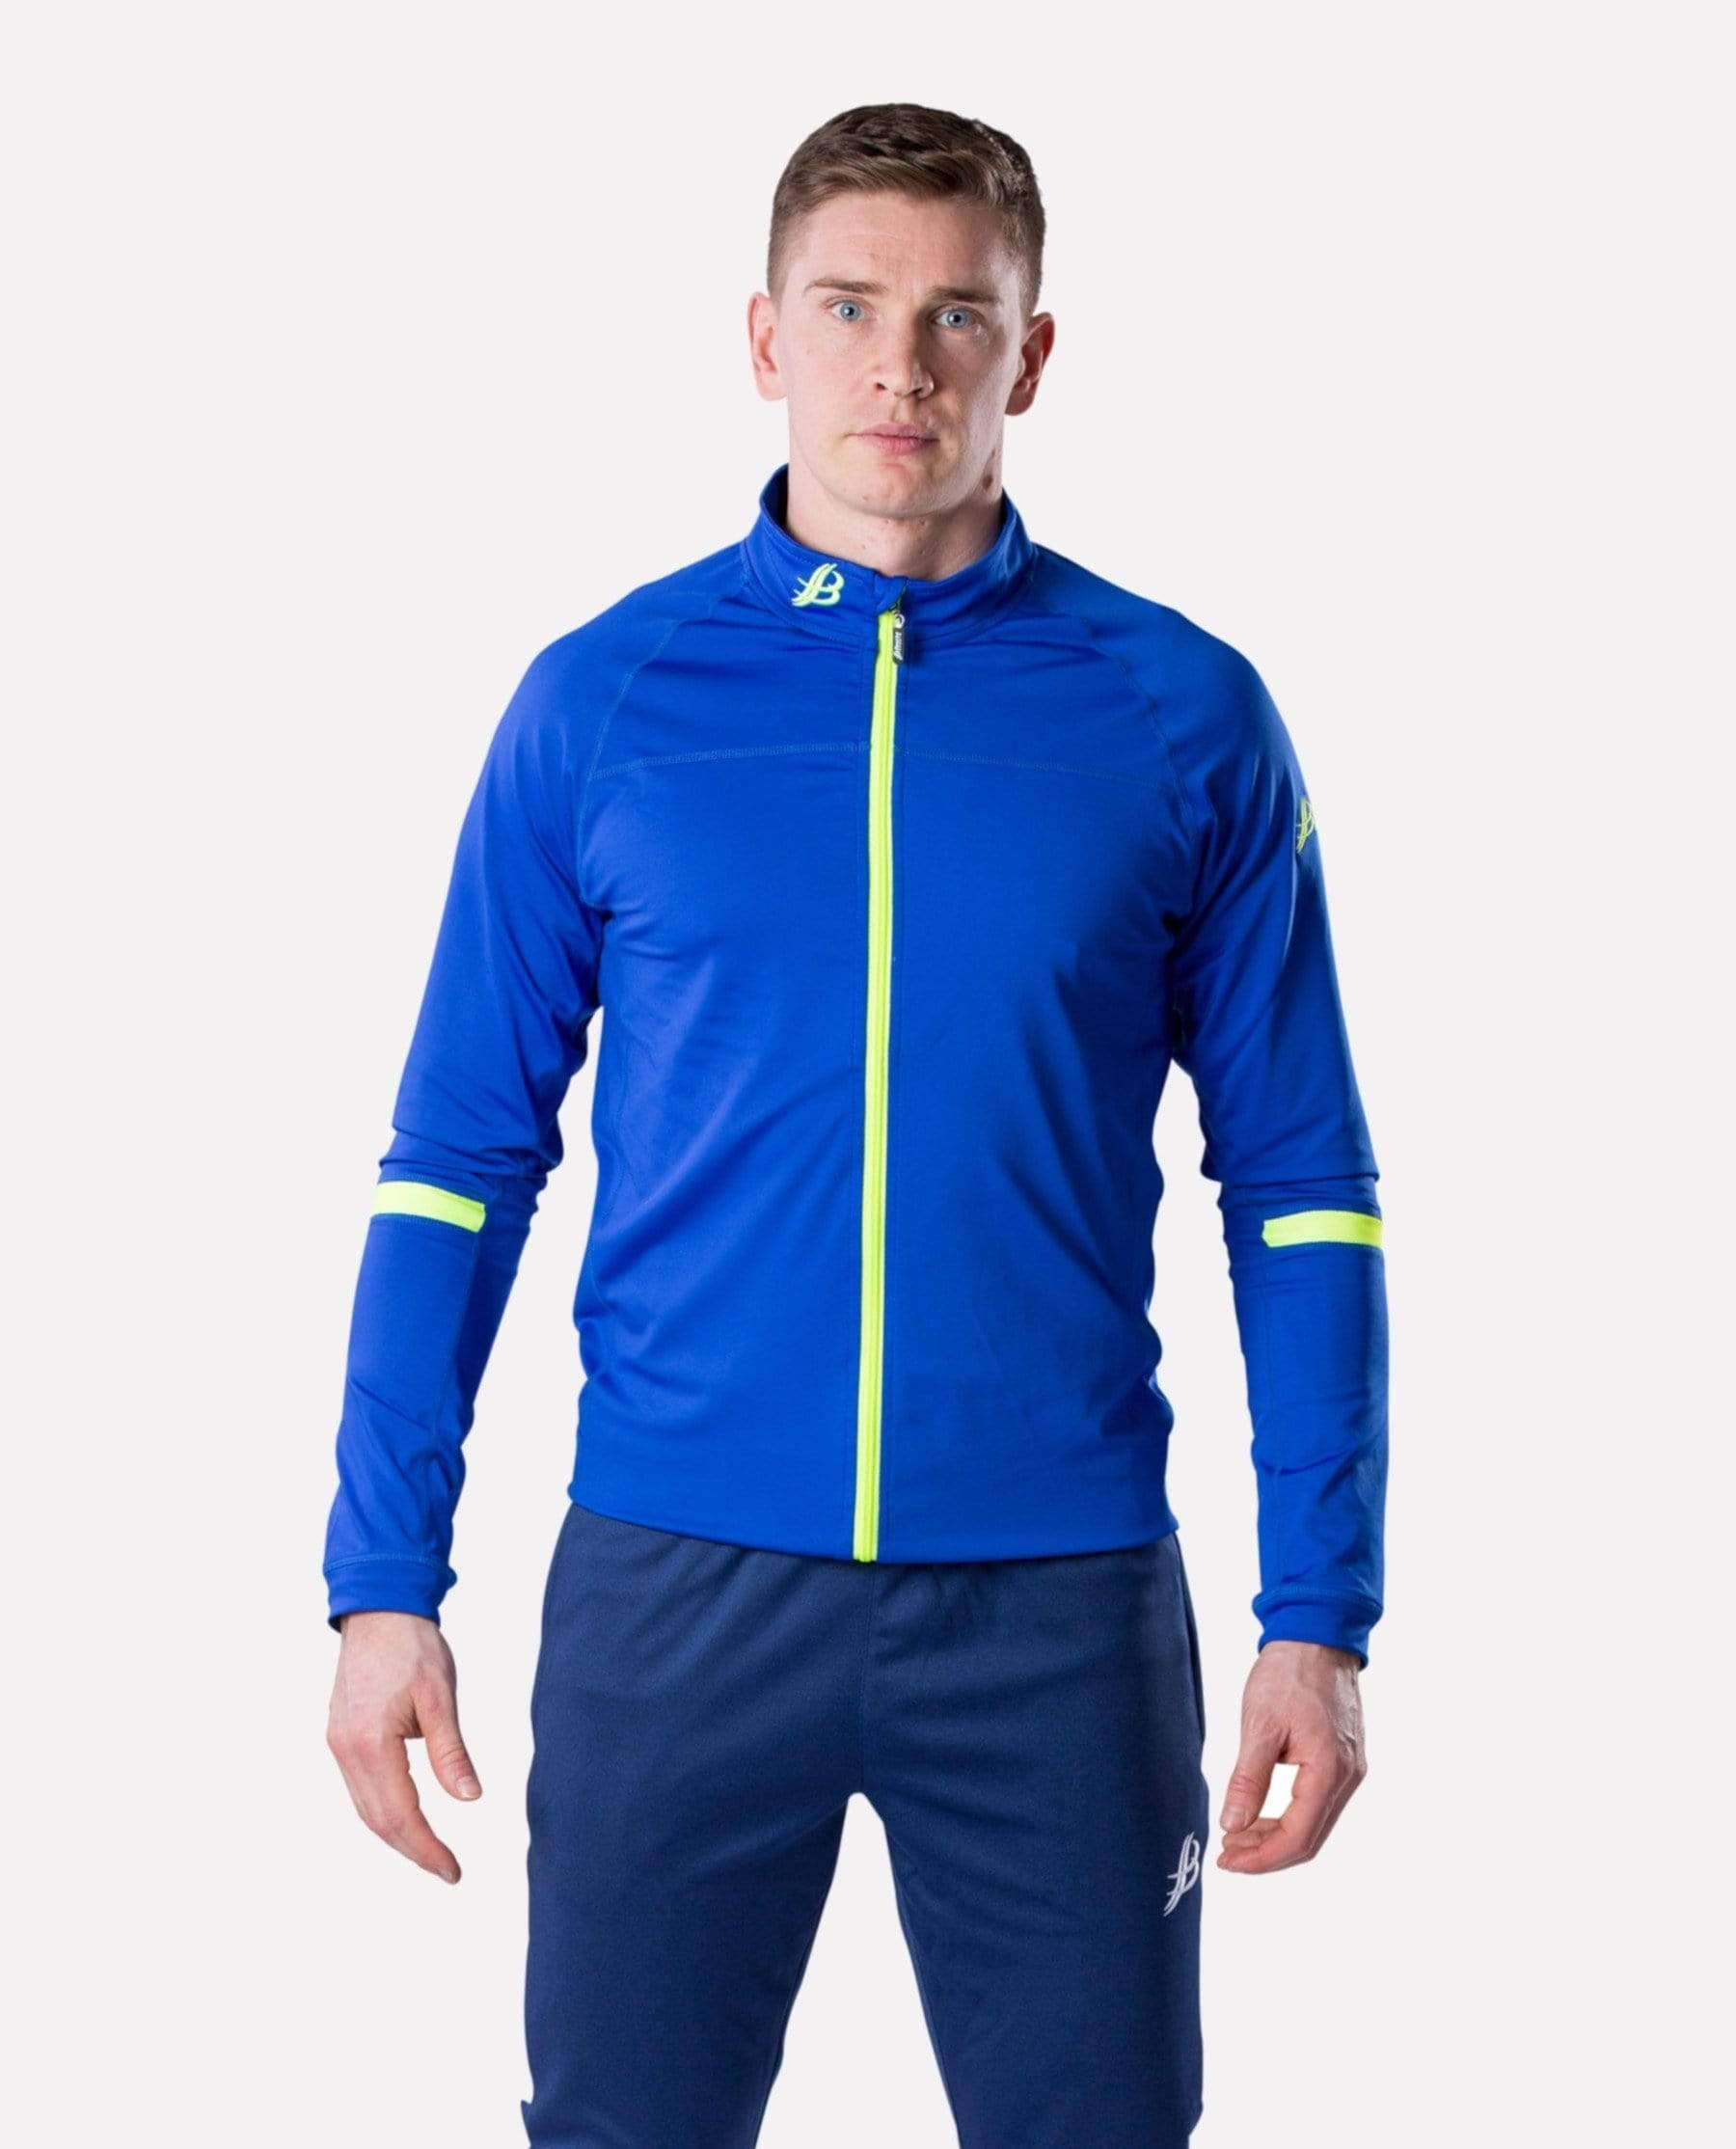 ALPHA Adult Full Zip (Blue/Luminous)